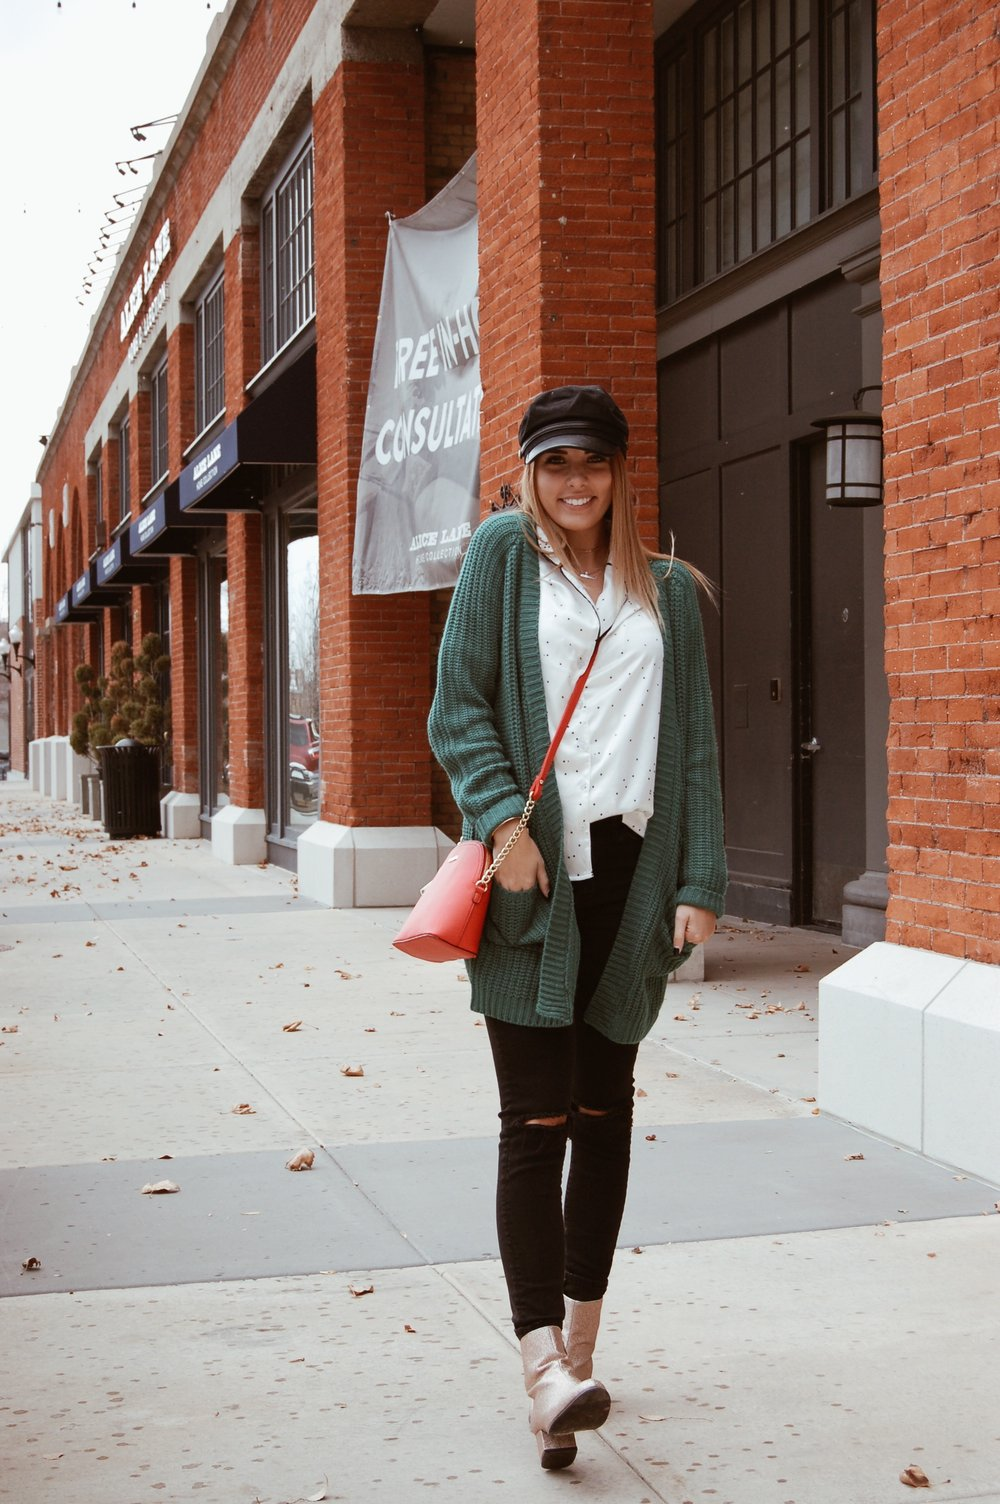 Cardigan//  Hadley Rae Boutique -- ON SALE FOR $20